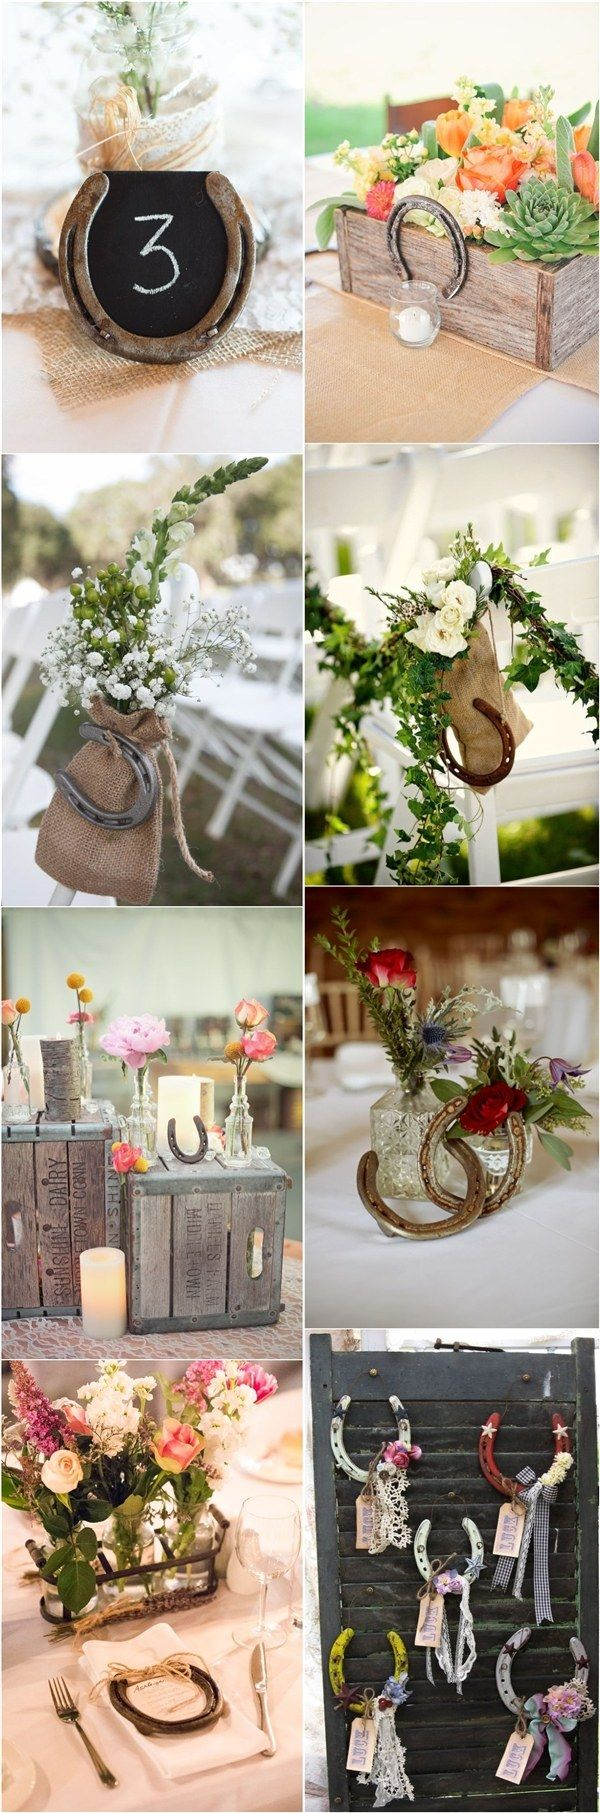 rustic country farm wedding ideas